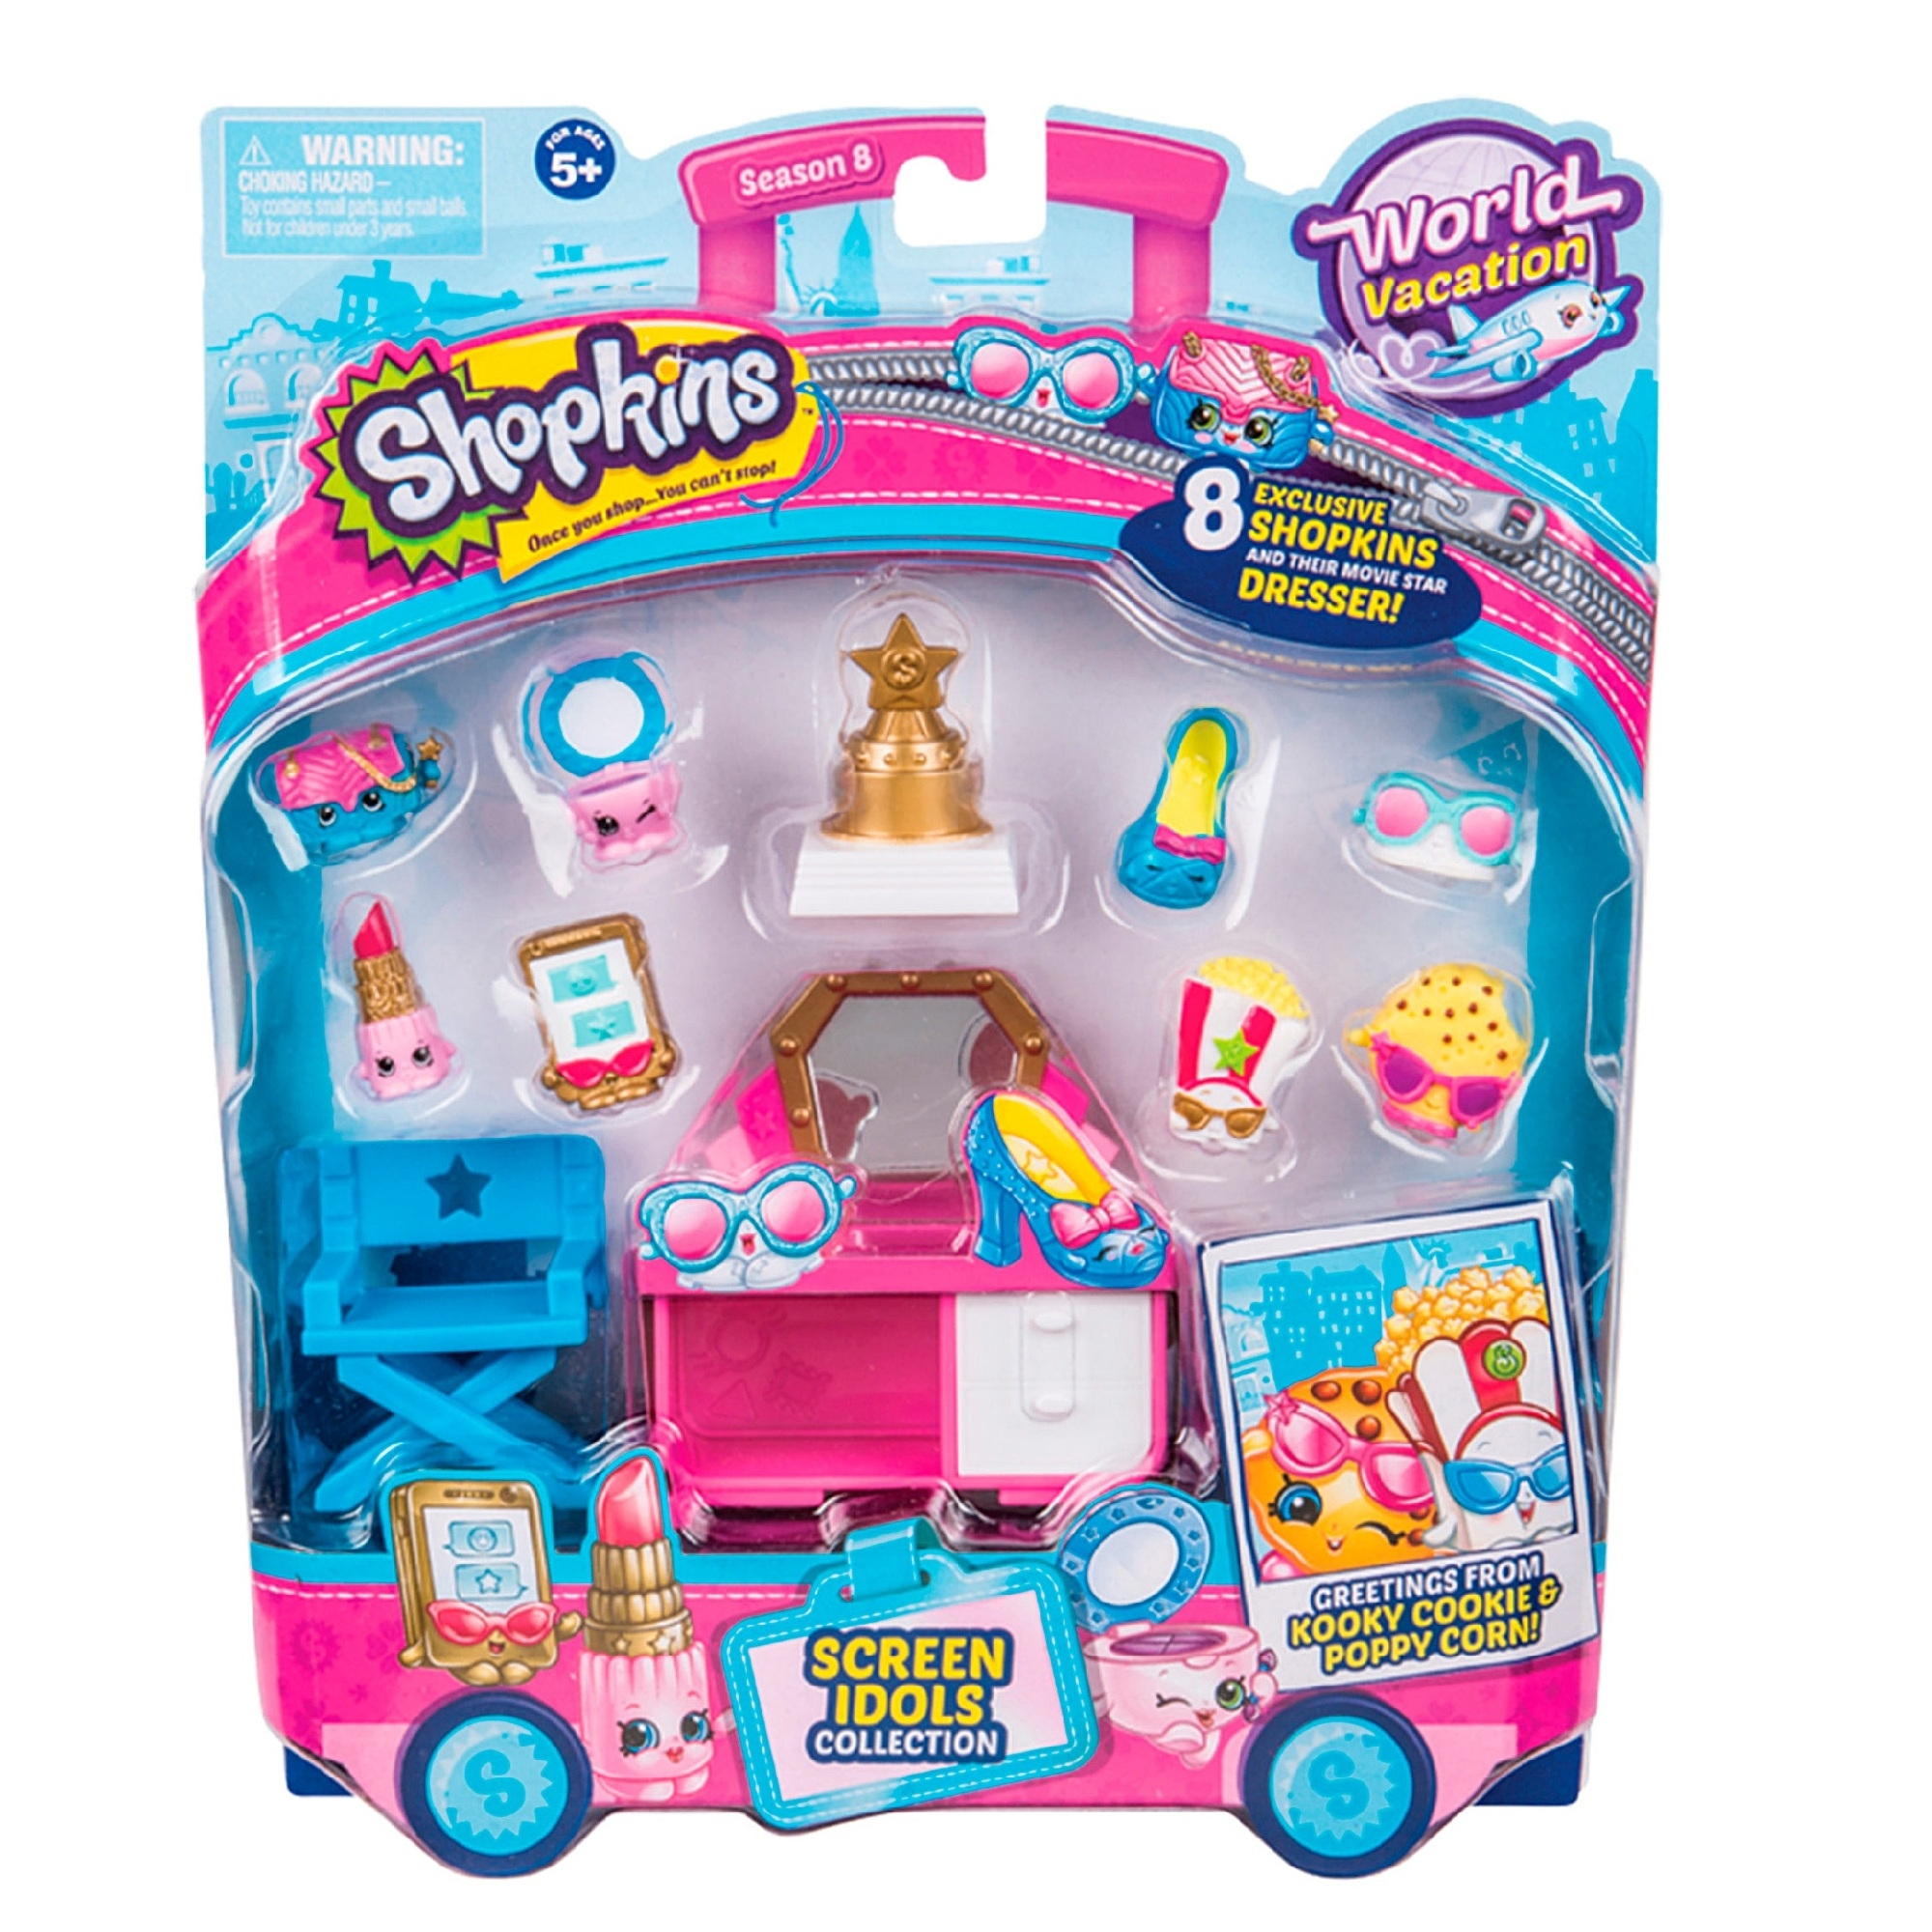 Shopkins World Vacation S8 America Screen Idols Collection